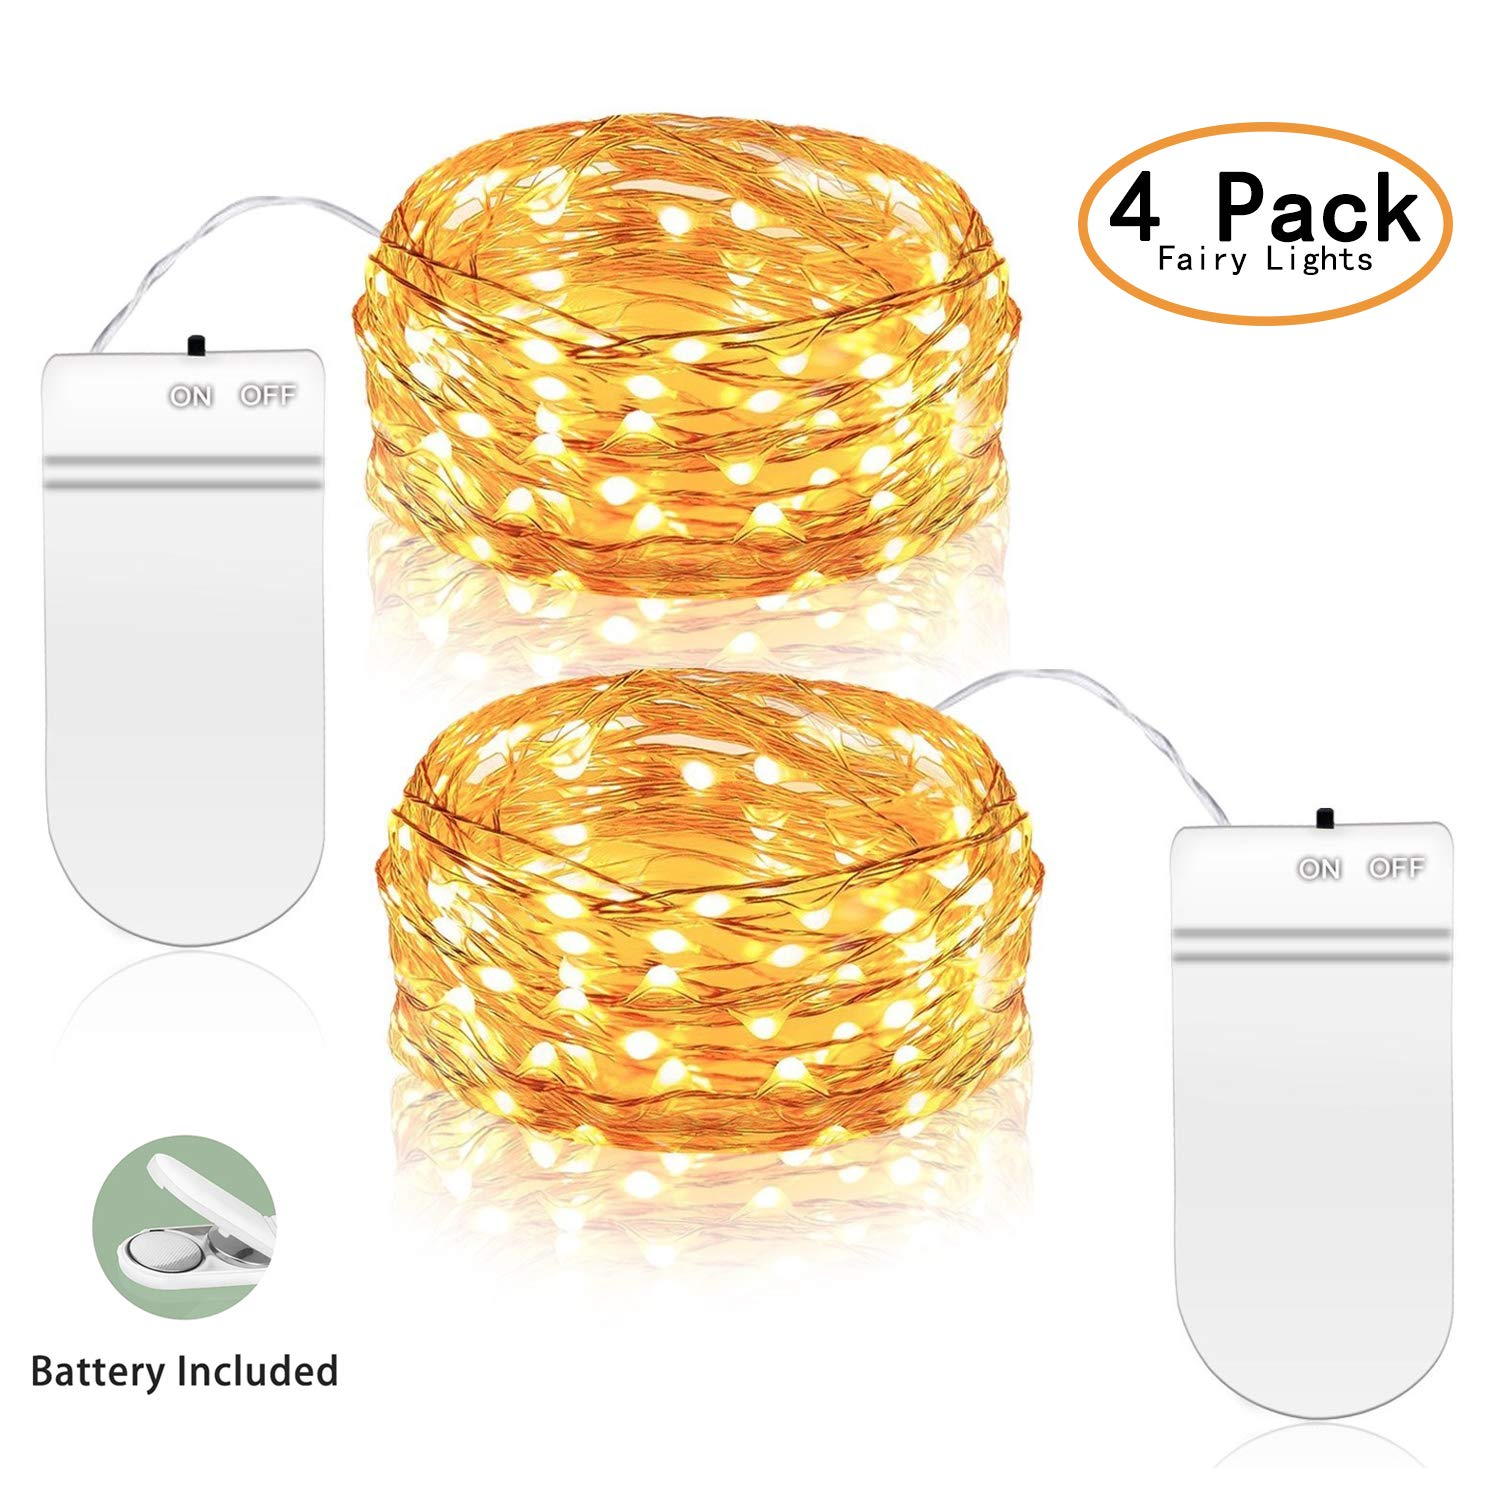 ANJAYLIA-4 Pack-Fairy String Lights, 9.8ft 30LEDs String Lights Battery Operated, Waterproof Warm White Starry Fairy Lights on Copper Wire, Home Decor Christmas Lights (4 Pack)